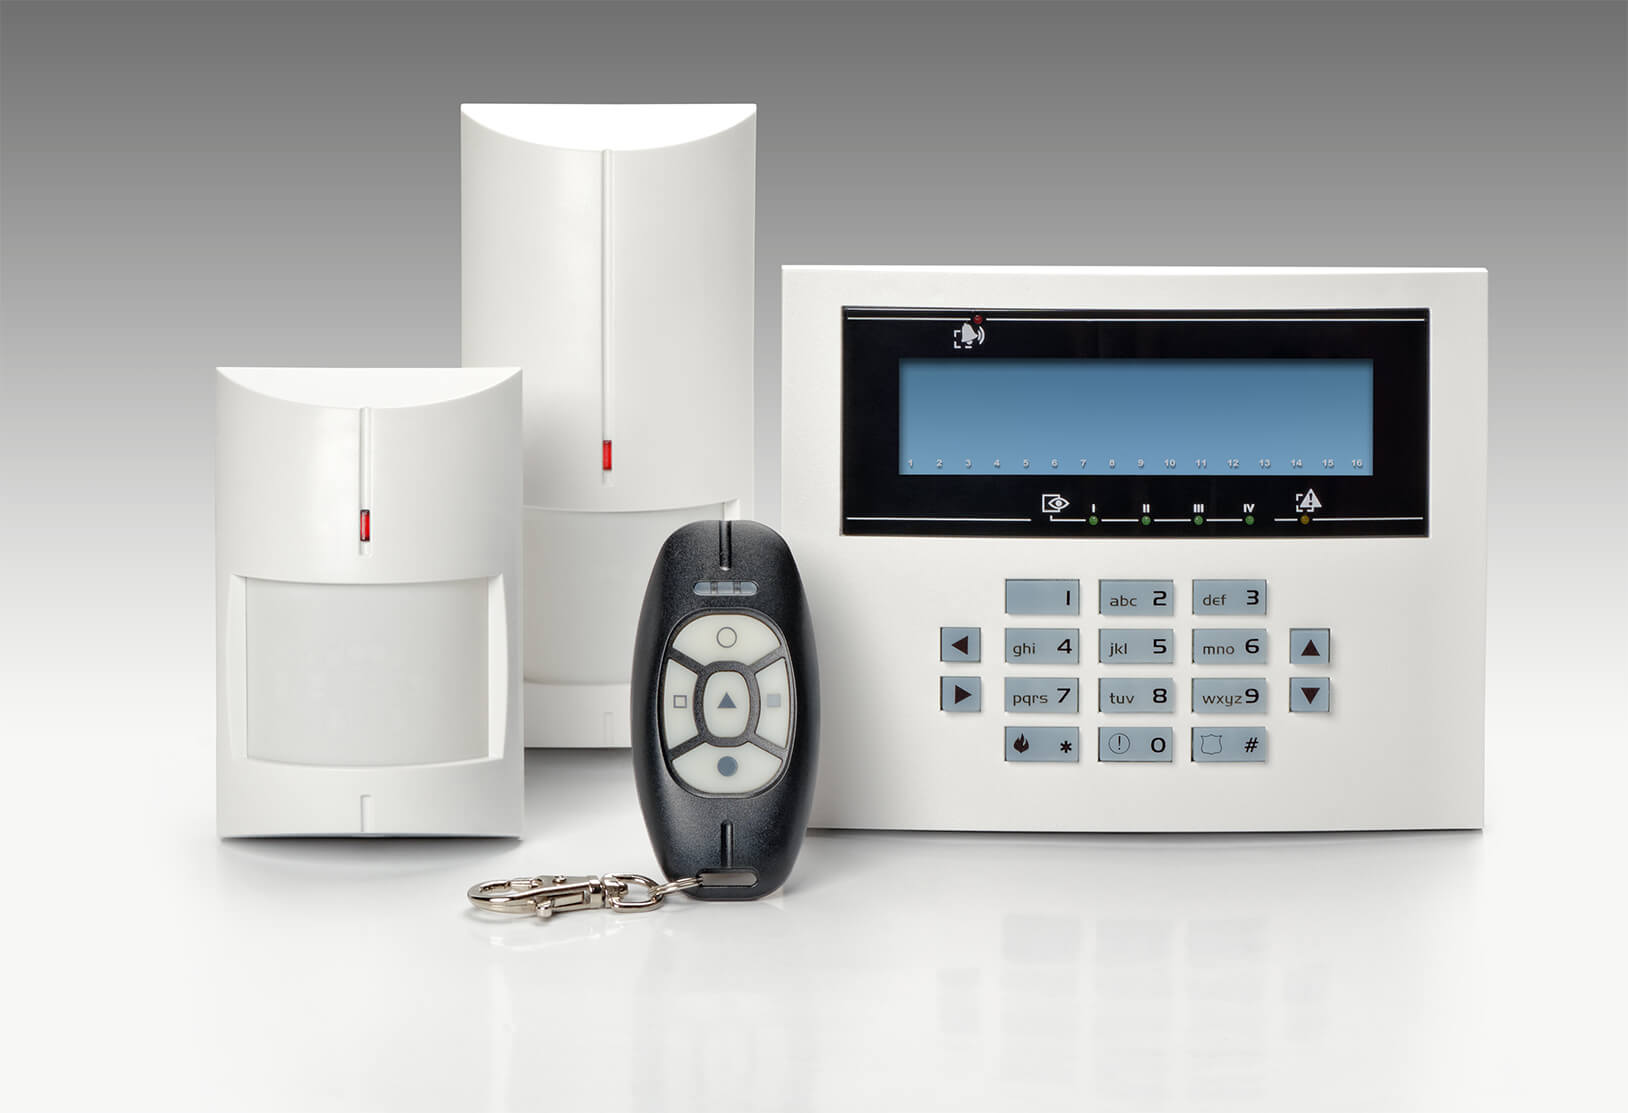 Business & Residential NACOSS Approved Burglar Alarms In Queens Park NW6 - Local Queens Park NW6 security company.Call 02078872244 - Dedicated to Safety & Security. Companies, shops and homes ..